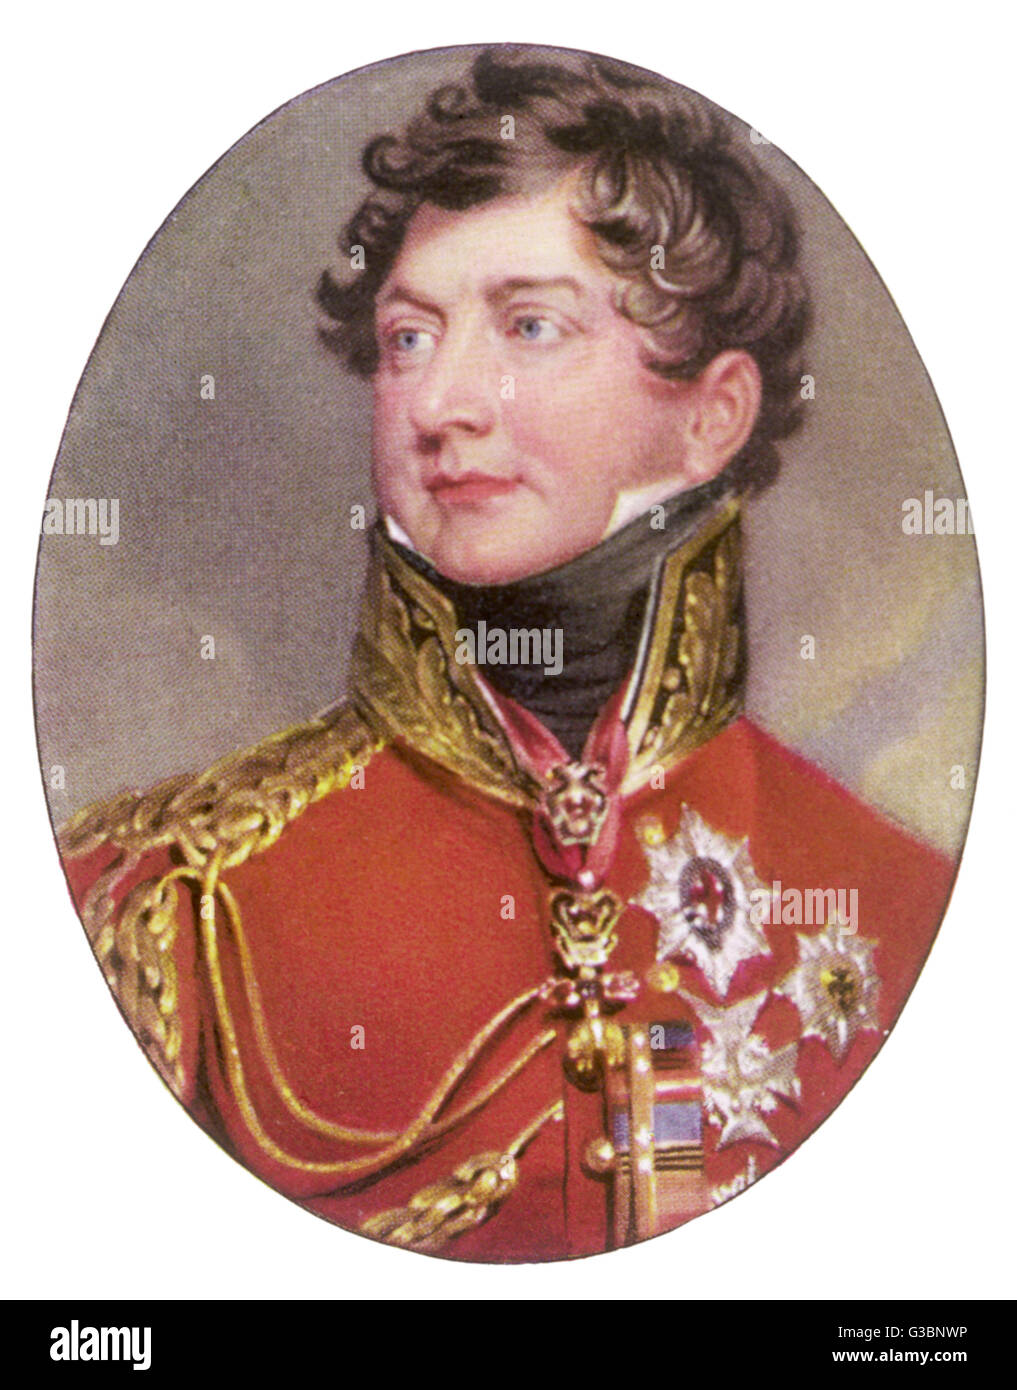 KING GEORGE IV OF ENGLAND (1762 - 1830) Reigned 1820 - 1830 - Stock Image